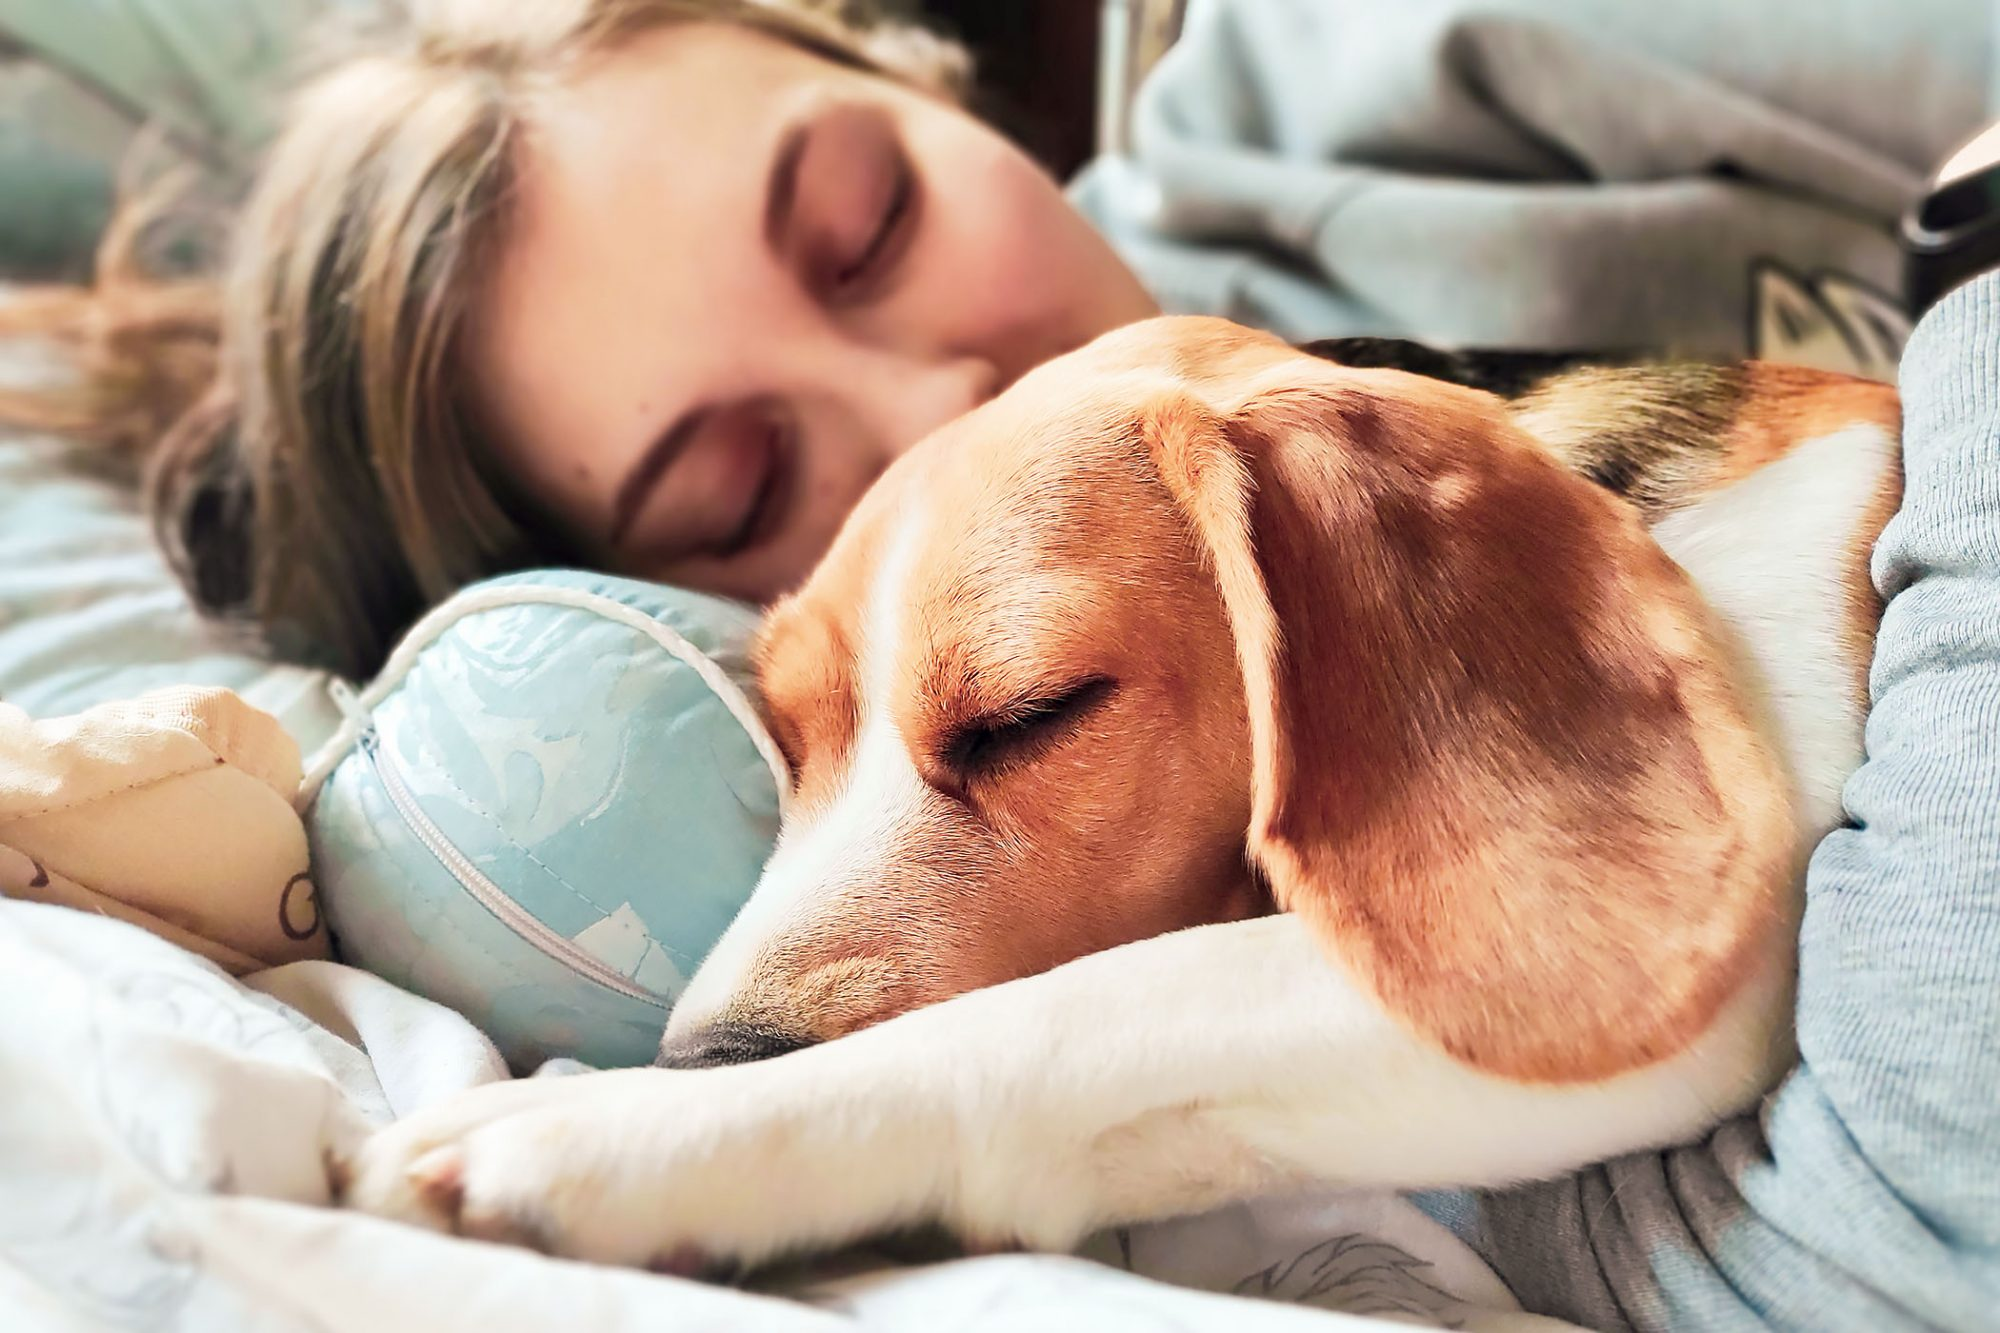 woman sharing a bed with her dog sleeping next to each other